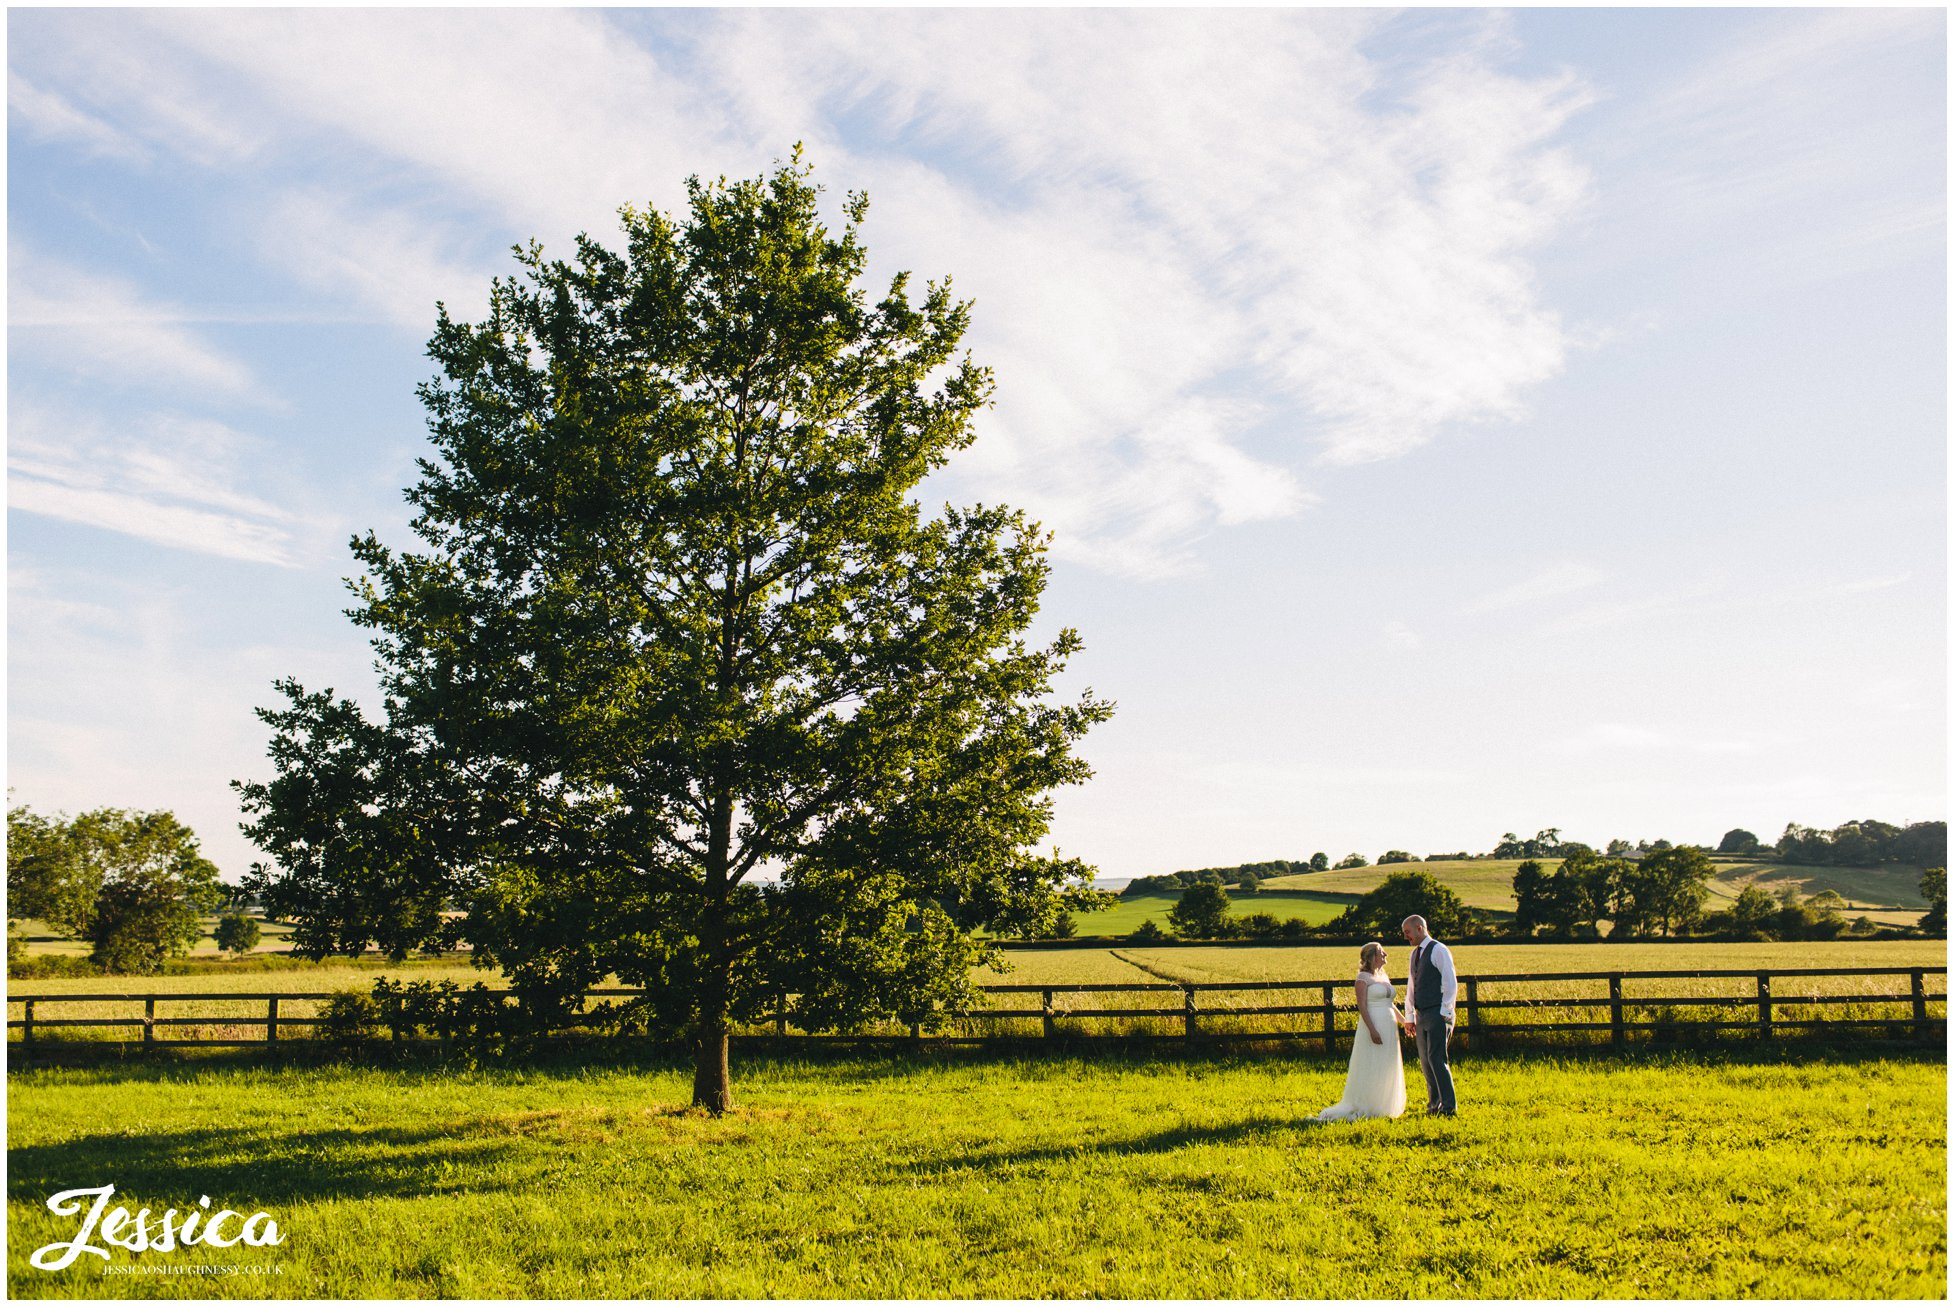 newly wed's stand next to a tree in the distance